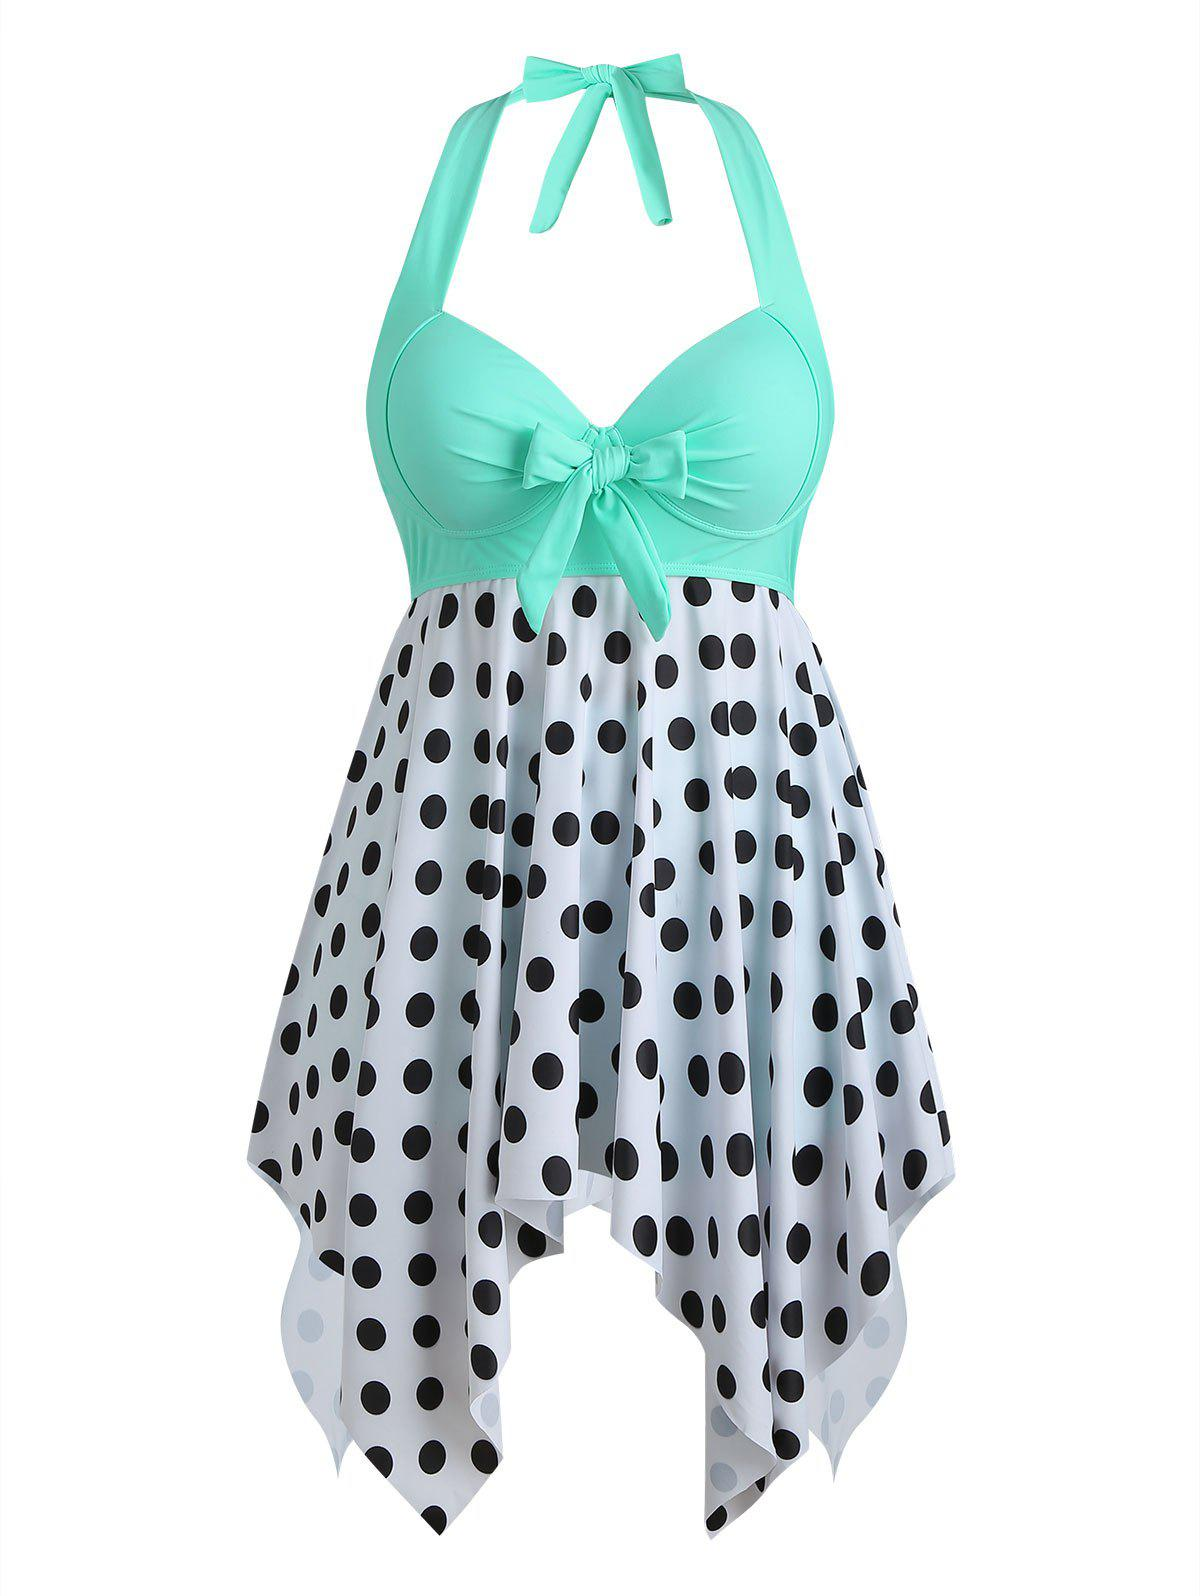 Palm Tree Flamingo Fishscale Polka Dot Bowknot Plus Size Tankini Set - MINT GREEN 5X